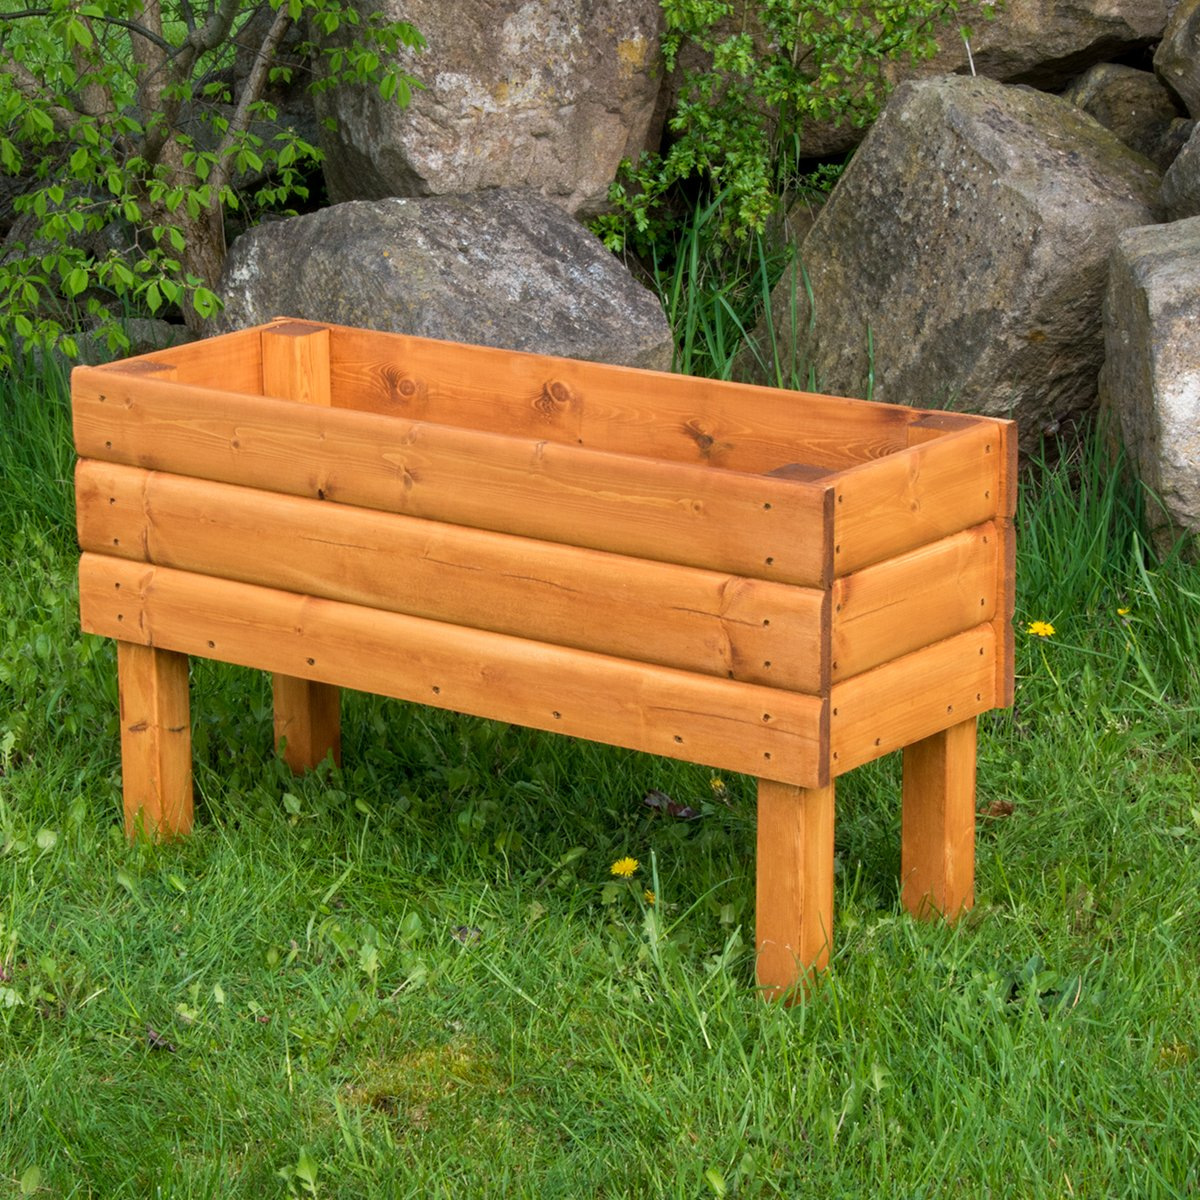 Riverside Woodcraft Heavy Duty Trough Planter Extra Large With Anti Bacteria Coating